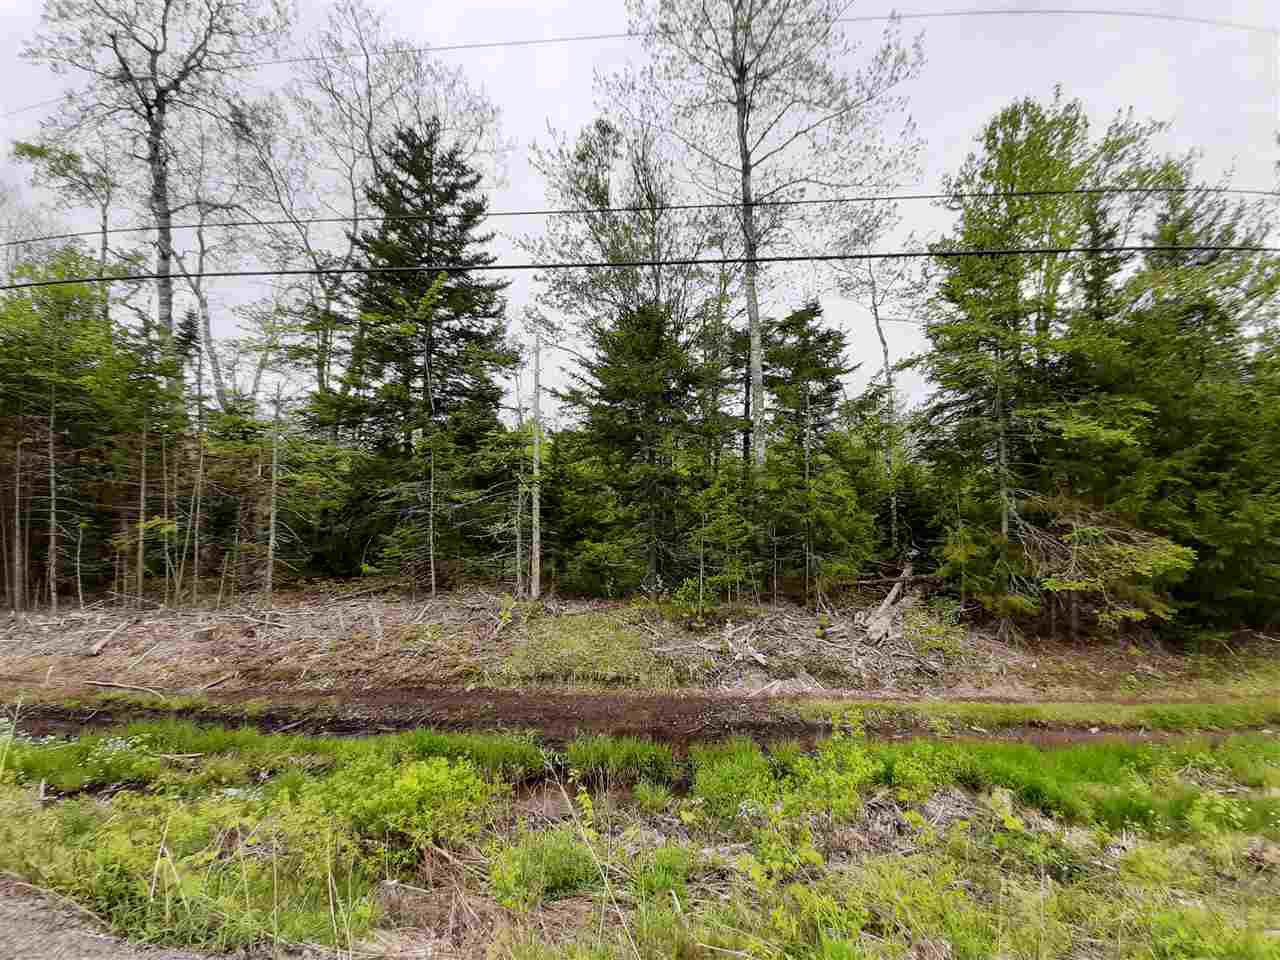 Main Photo: Lot A2 Aylesford Road in Lake Paul: 404-Kings County Vacant Land for sale (Annapolis Valley)  : MLS®# 202009529